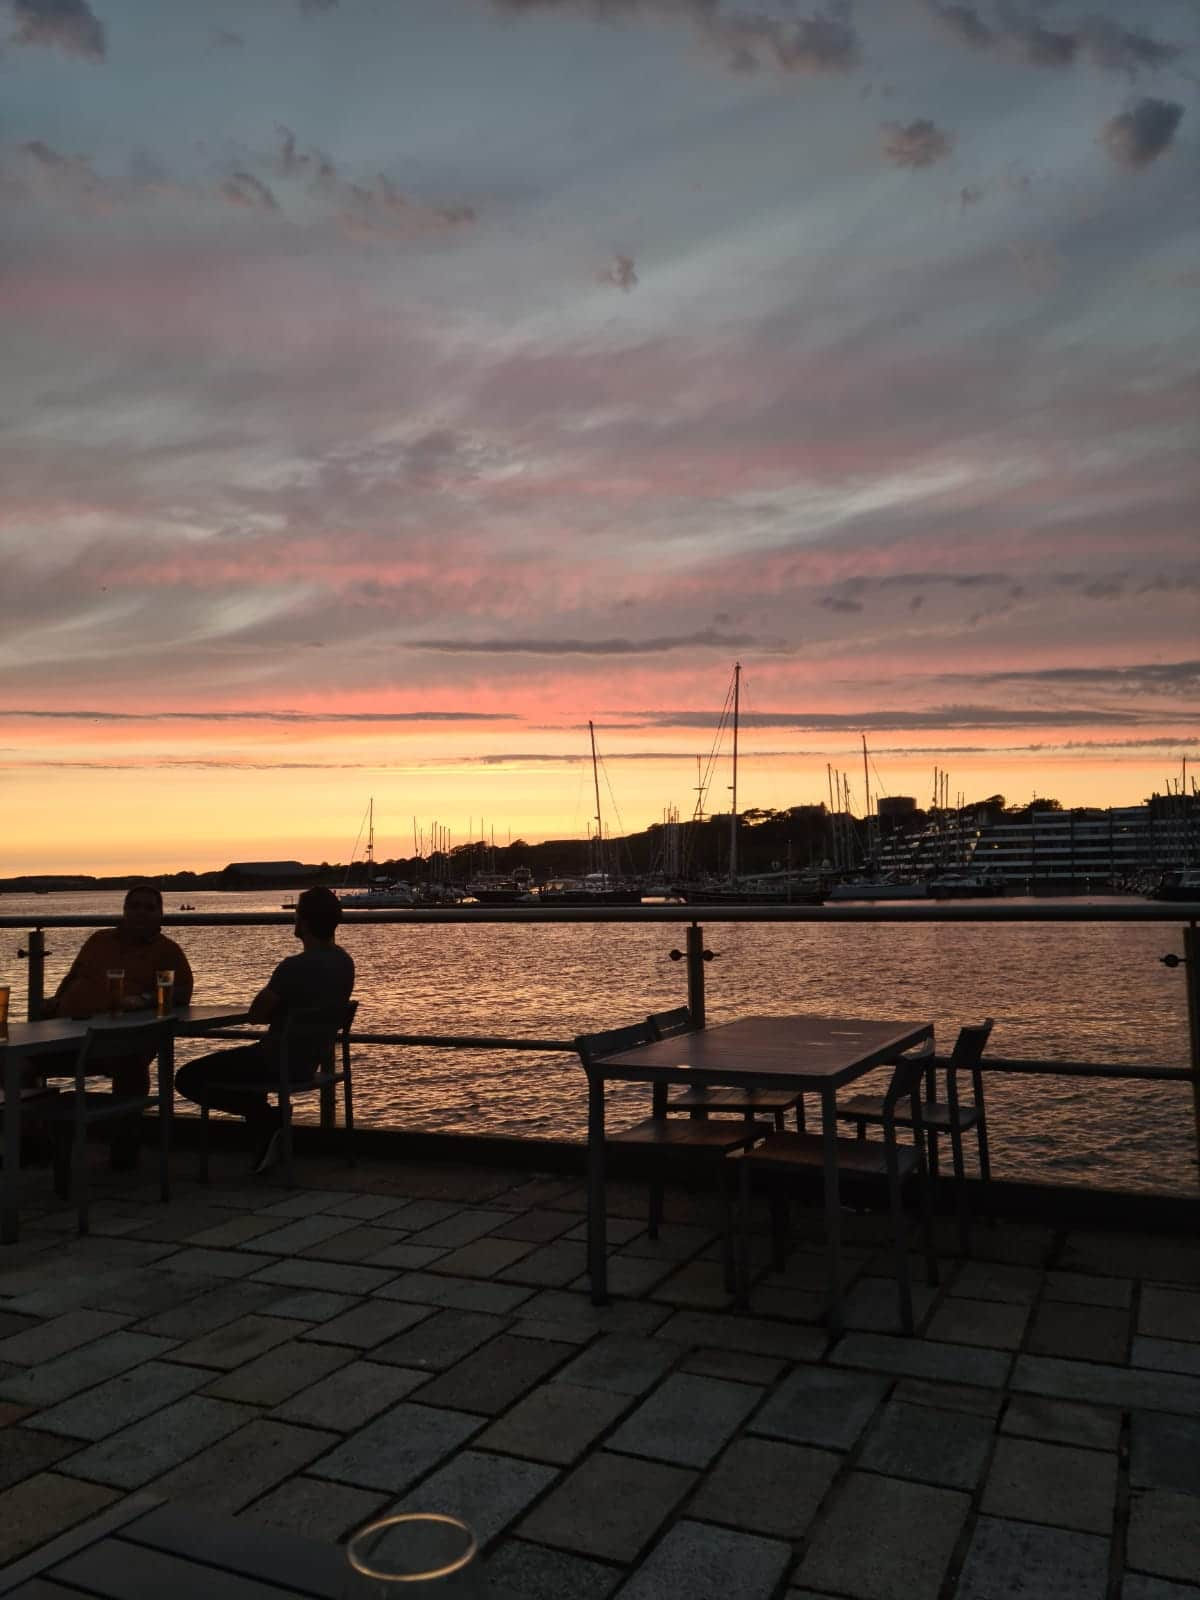 places to eat in the royal William yard wagamamas plymouth